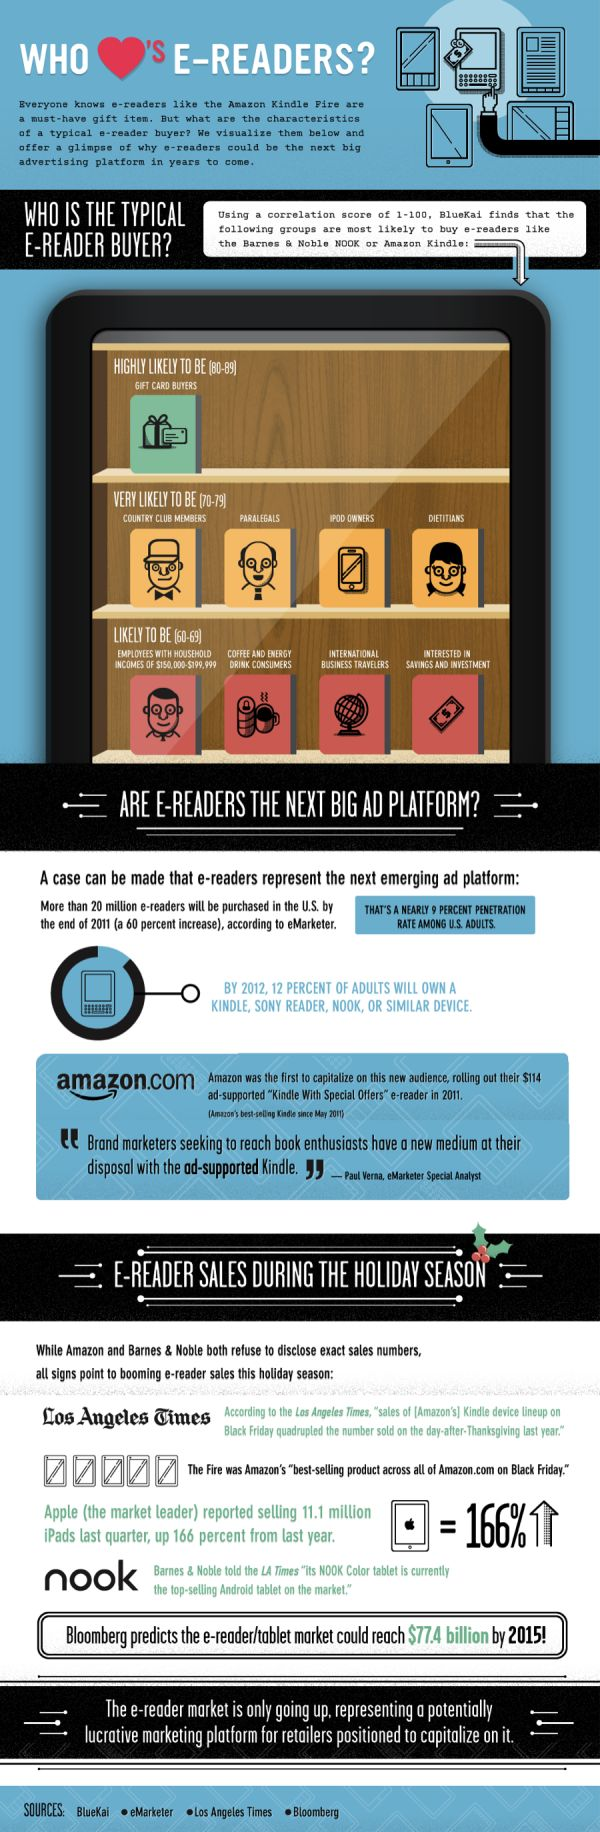 22 best amazon infographics images on pinterest amazon warriors who loves e readers via visual news i always love these infographics fandeluxe Image collections